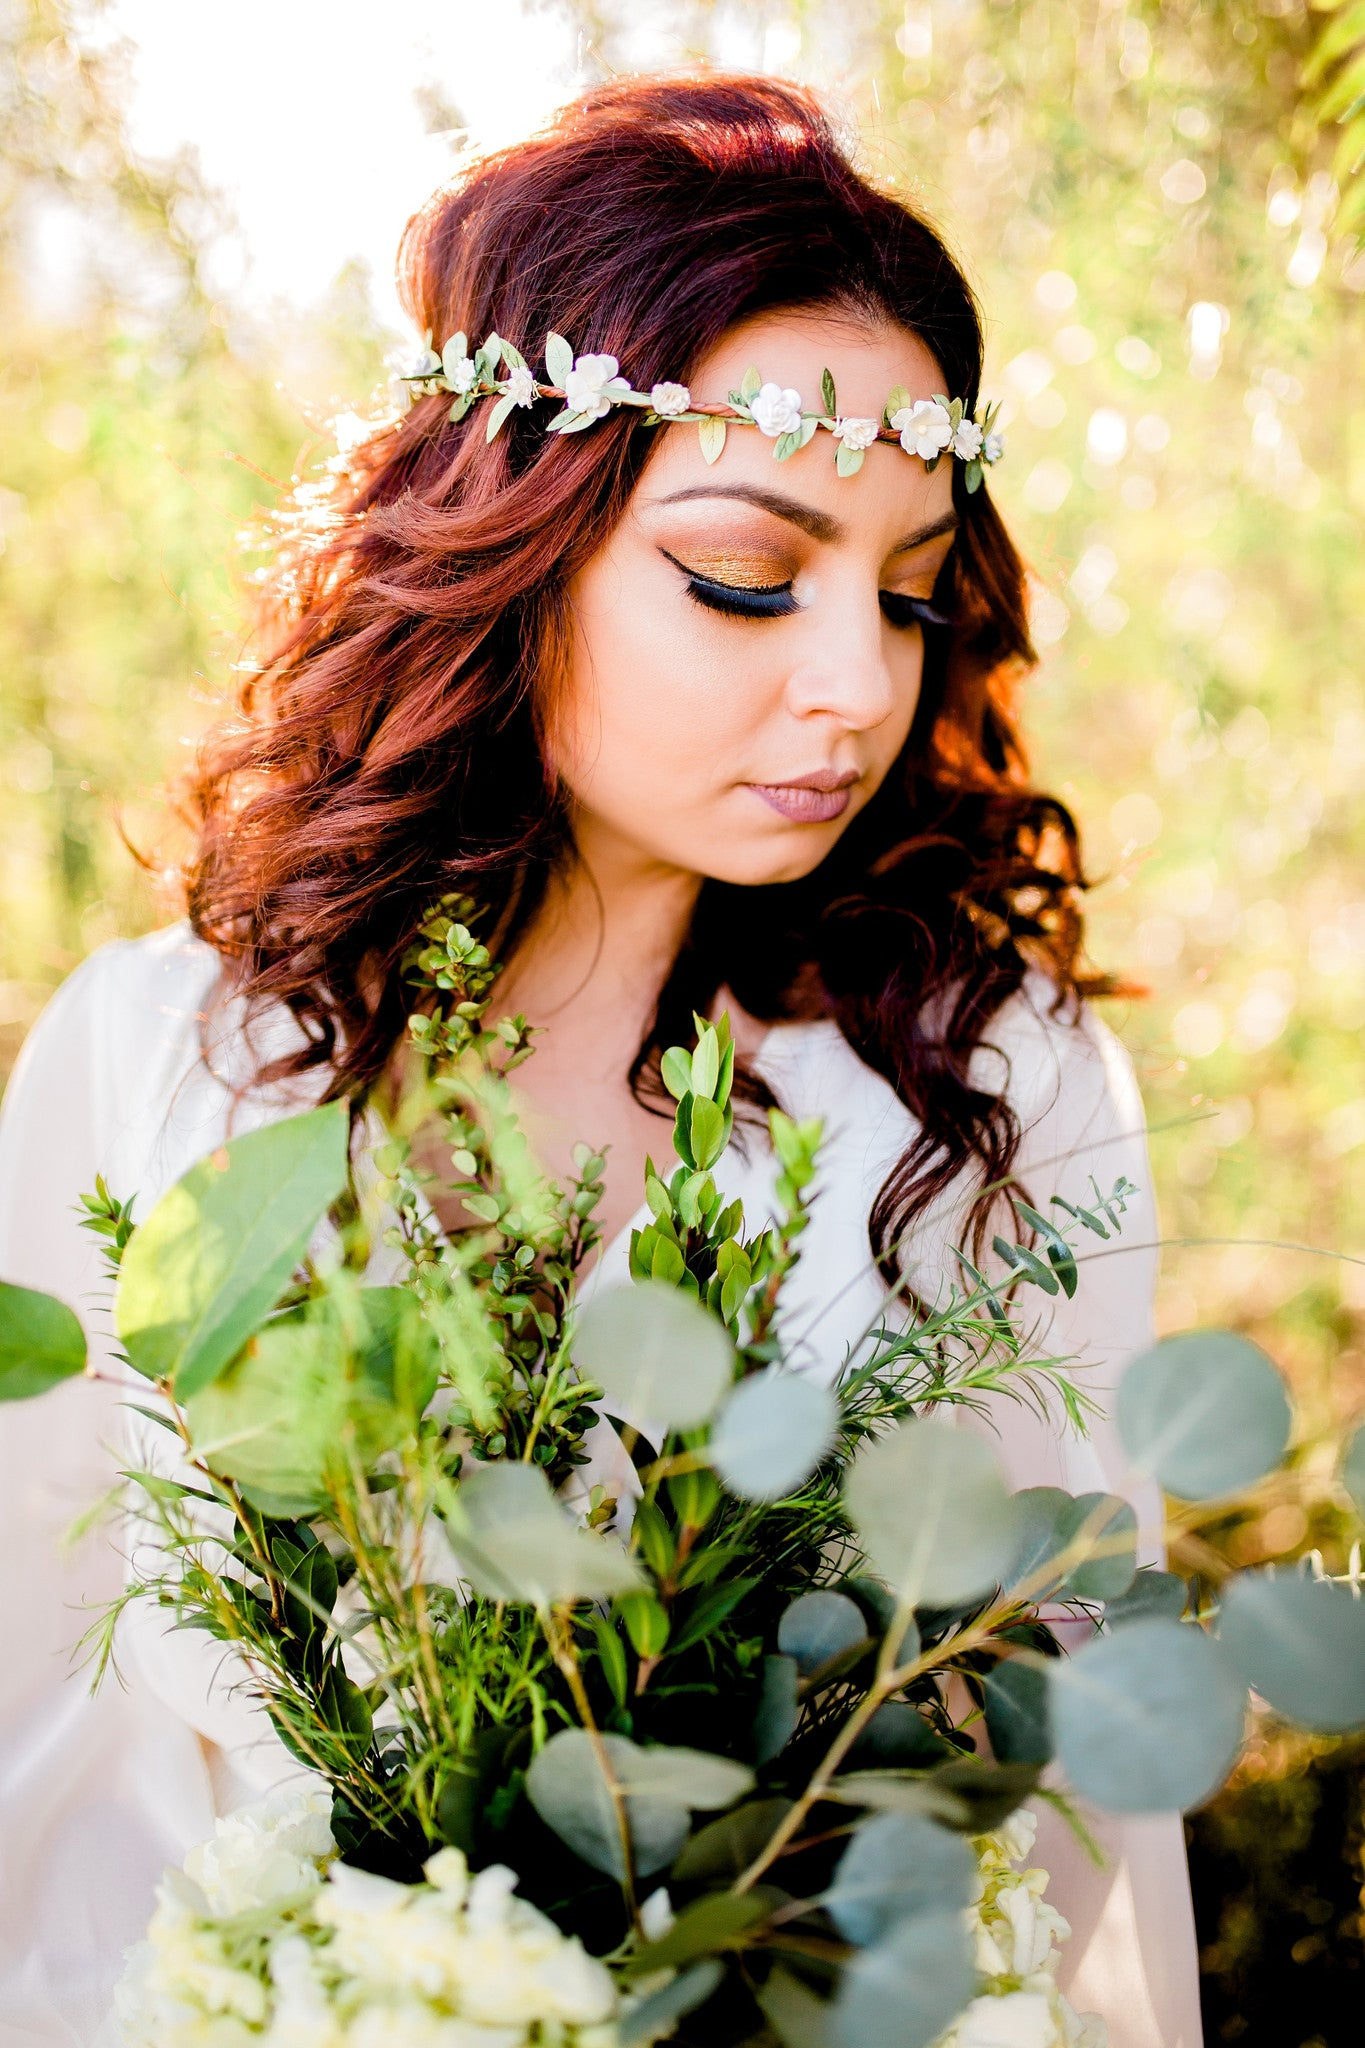 Bohemian flower crown d1024 vividbloom bohemian flower crown d1024 izmirmasajfo